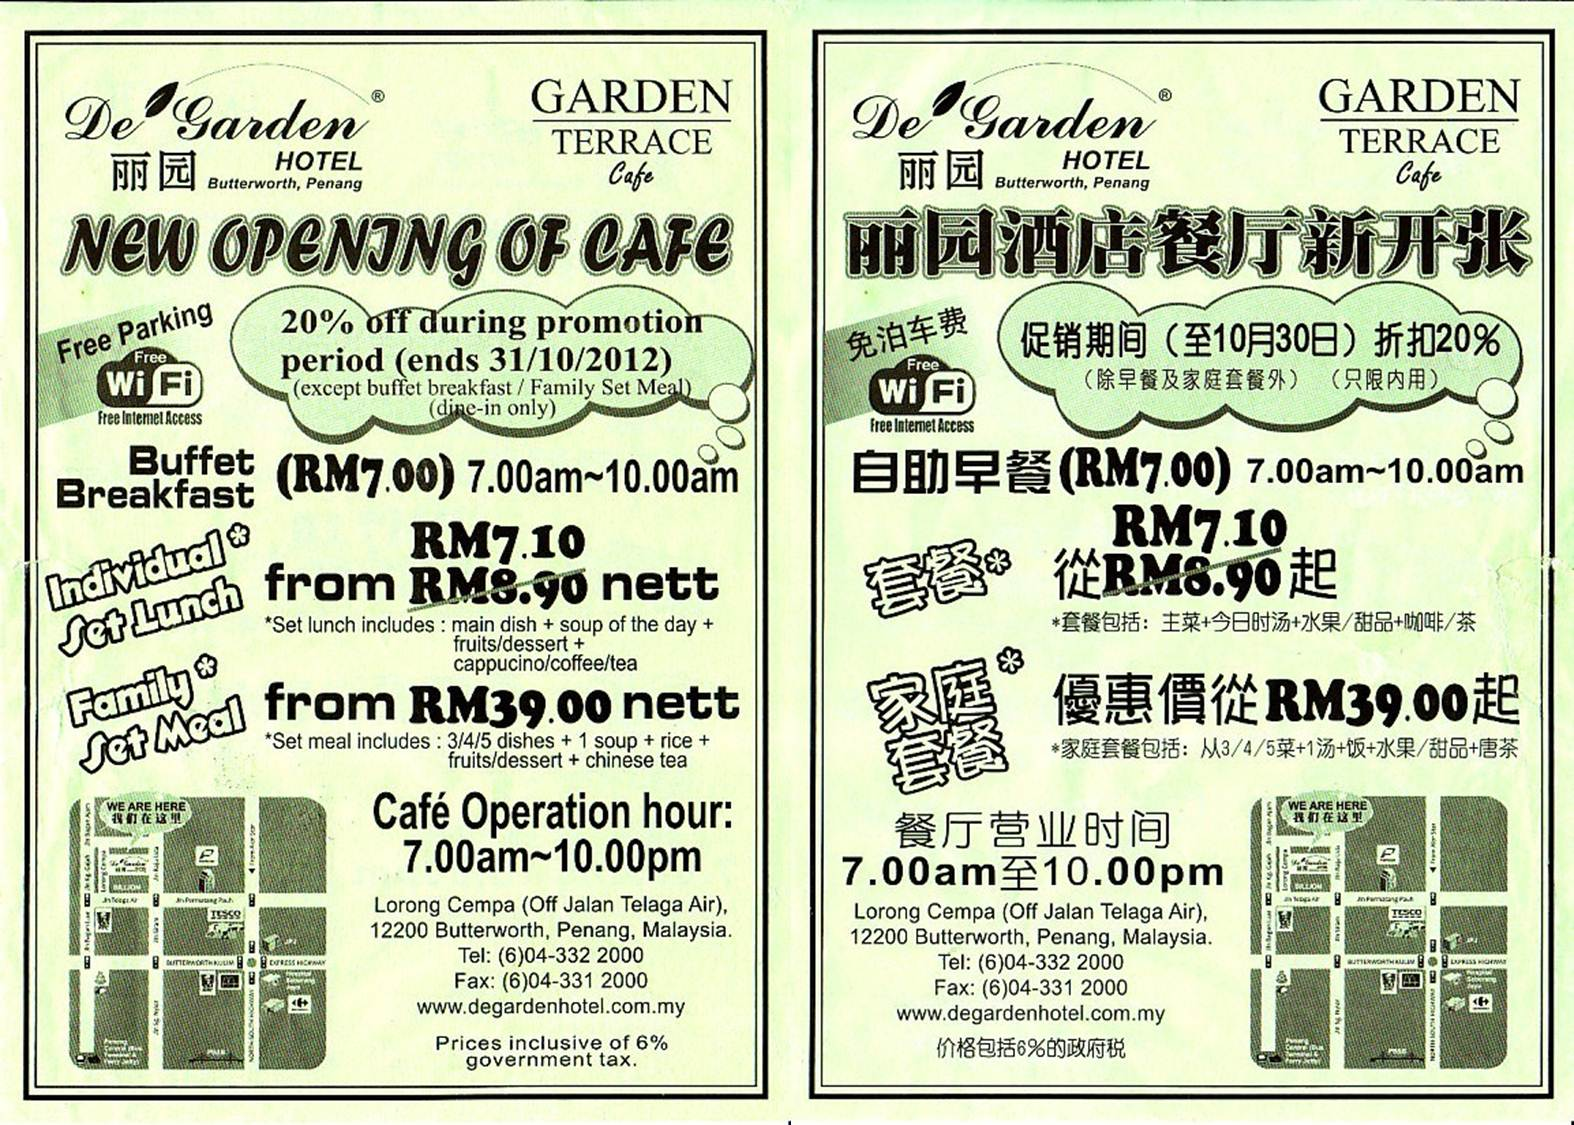 Penang ads de garden hotel garden terrace cafe for Terraces opening times